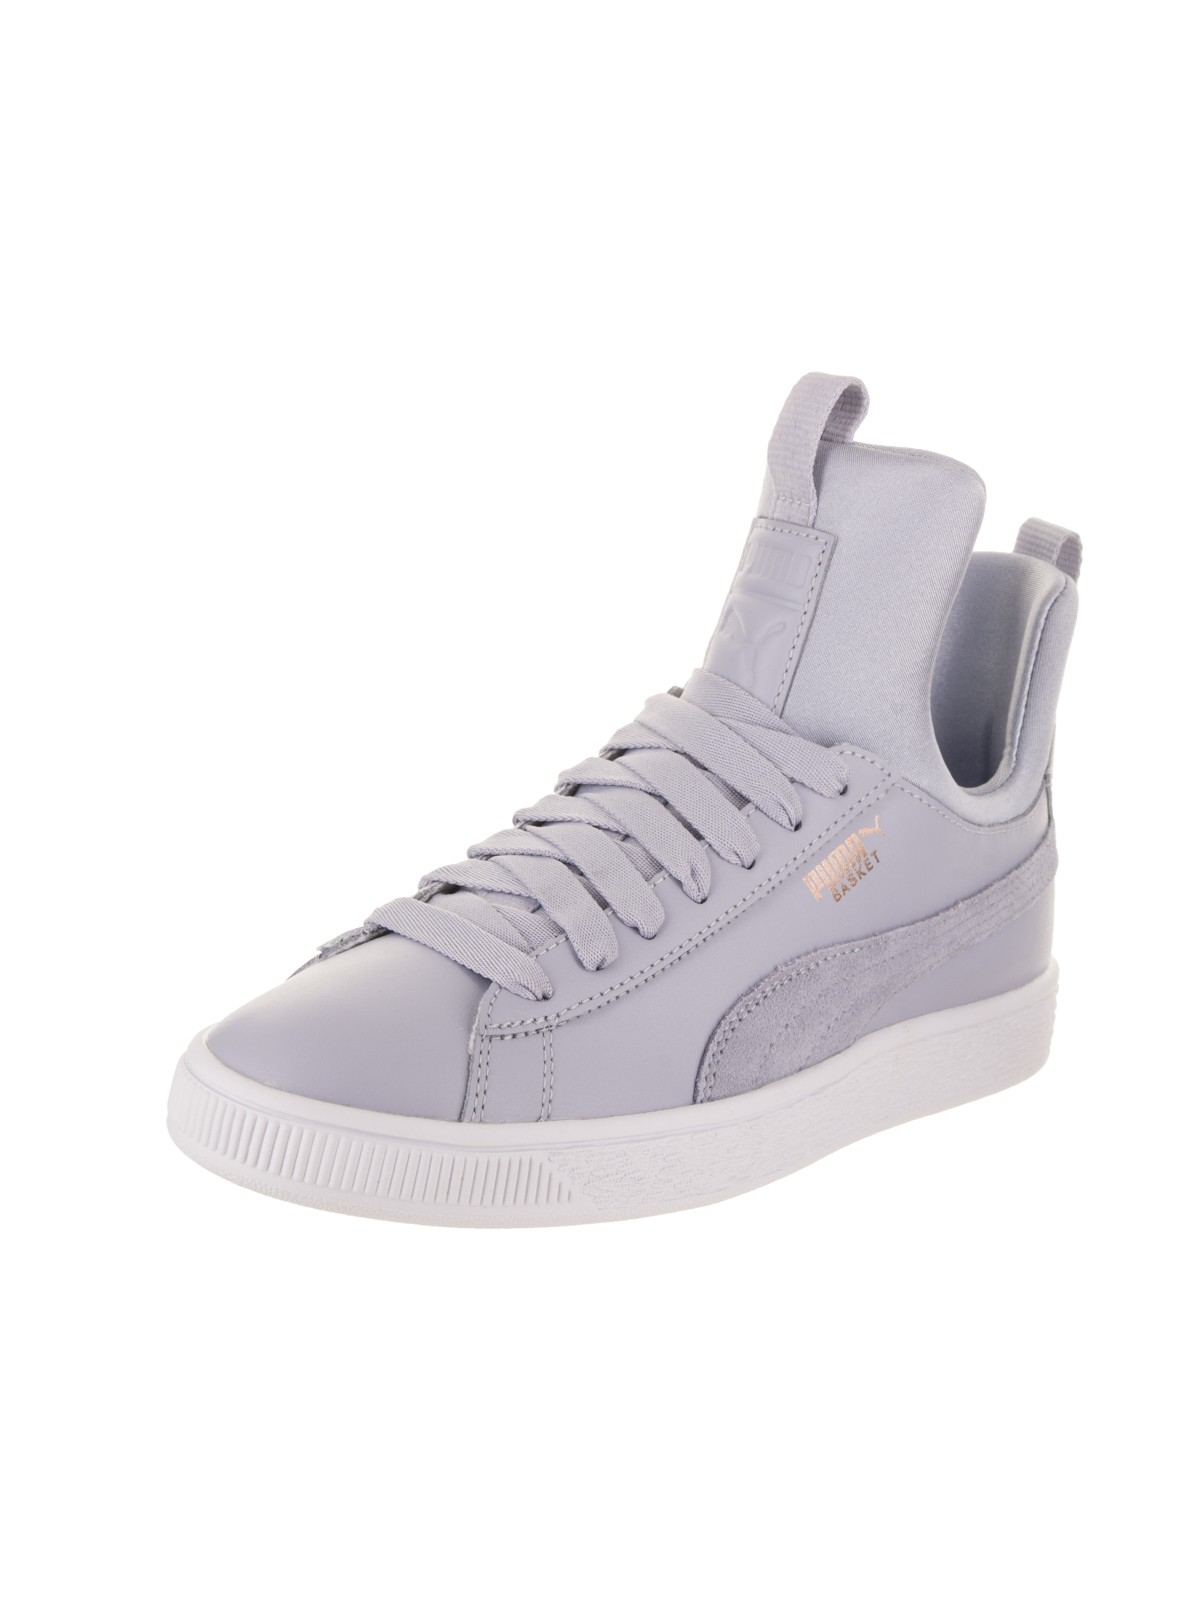 Puma Women's Basket Fierce Casual Shoe